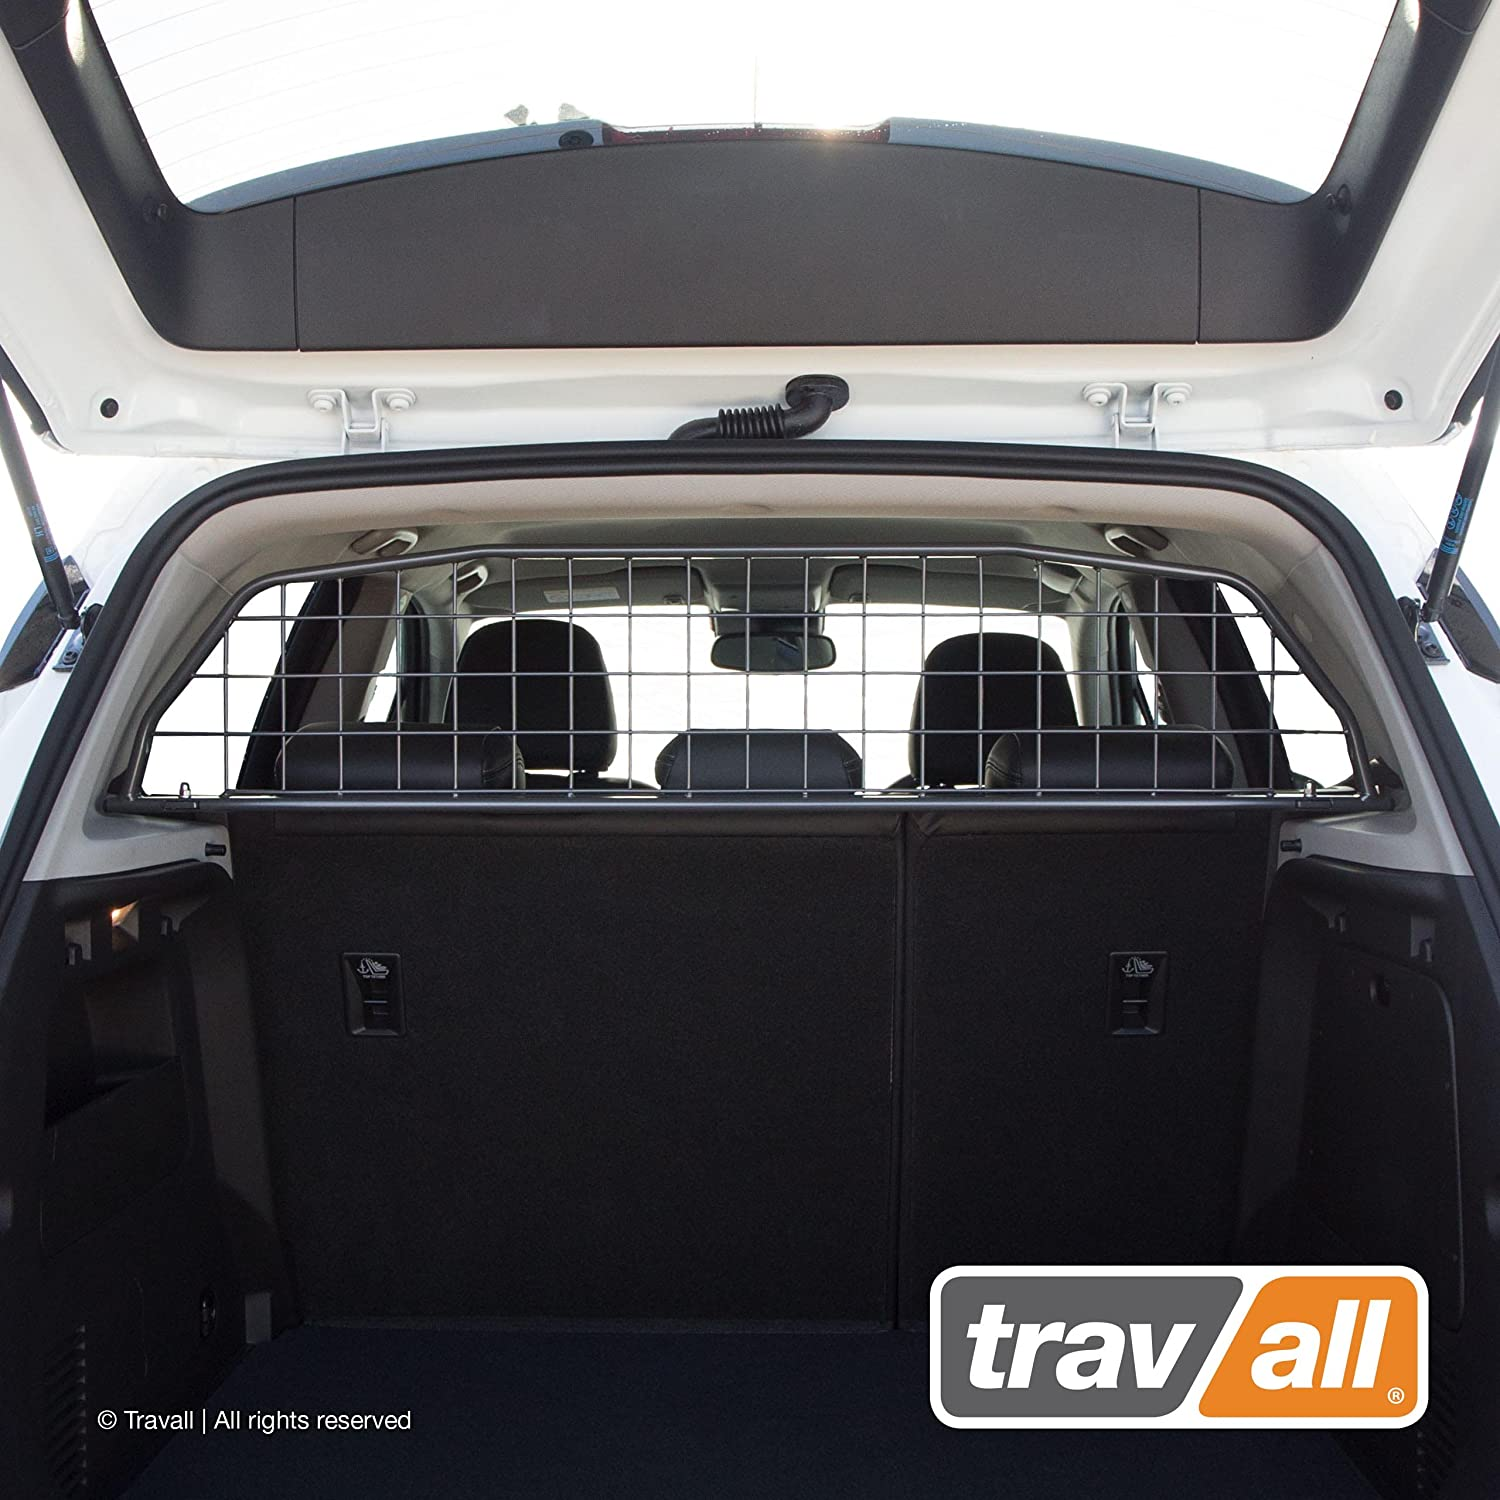 Travall Guard Compatible with Buick Encore 2012-2016 Also for Chevrolet Trax 2013-Current TDG1345 – Rattle-Free Steel Pet Barrier